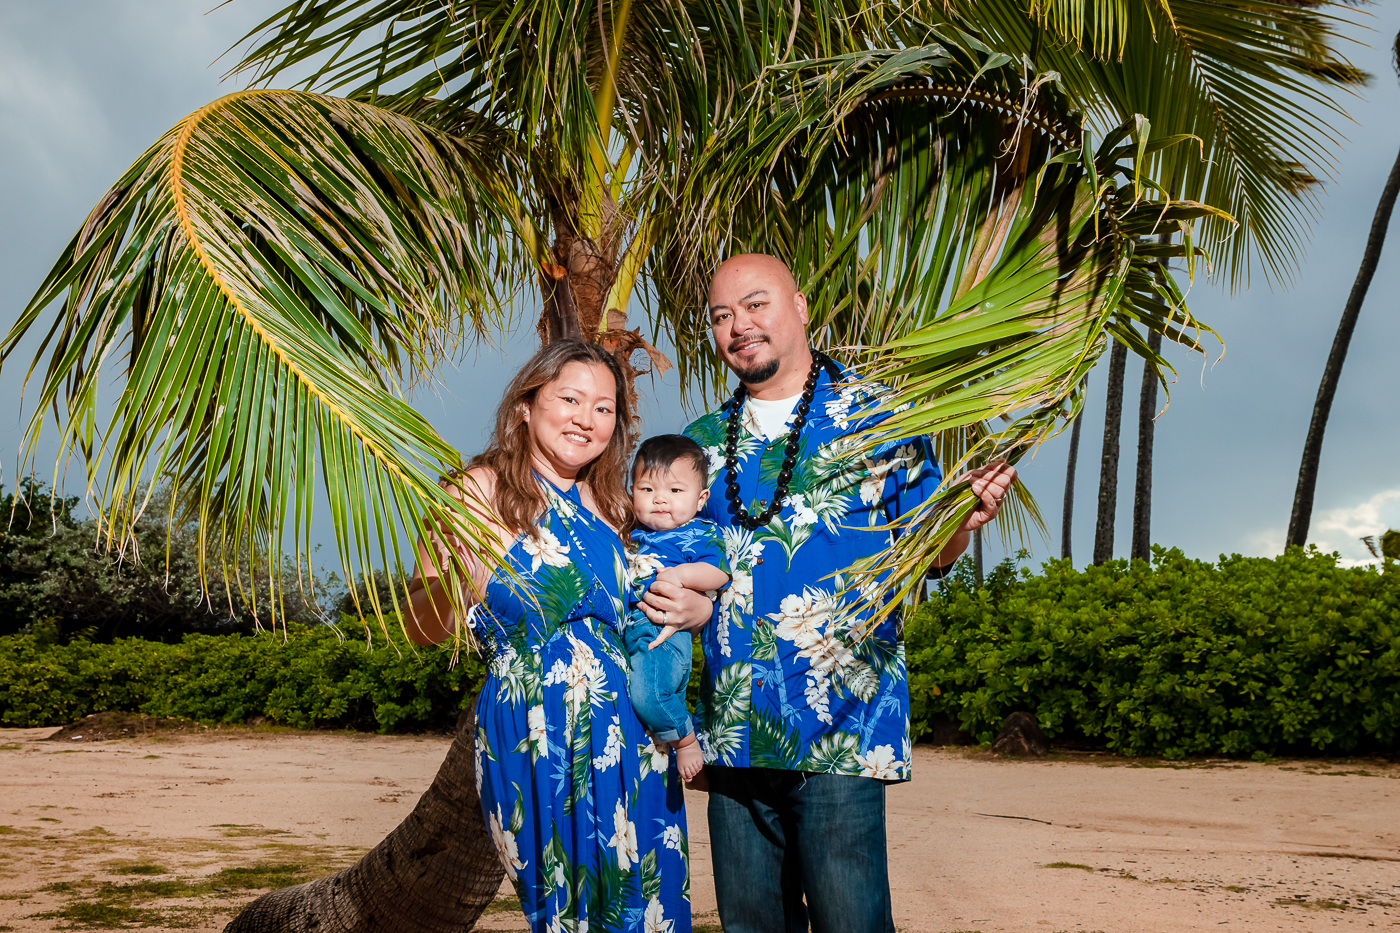 family portrait oahu hawaii palm tree heart shape child baby son